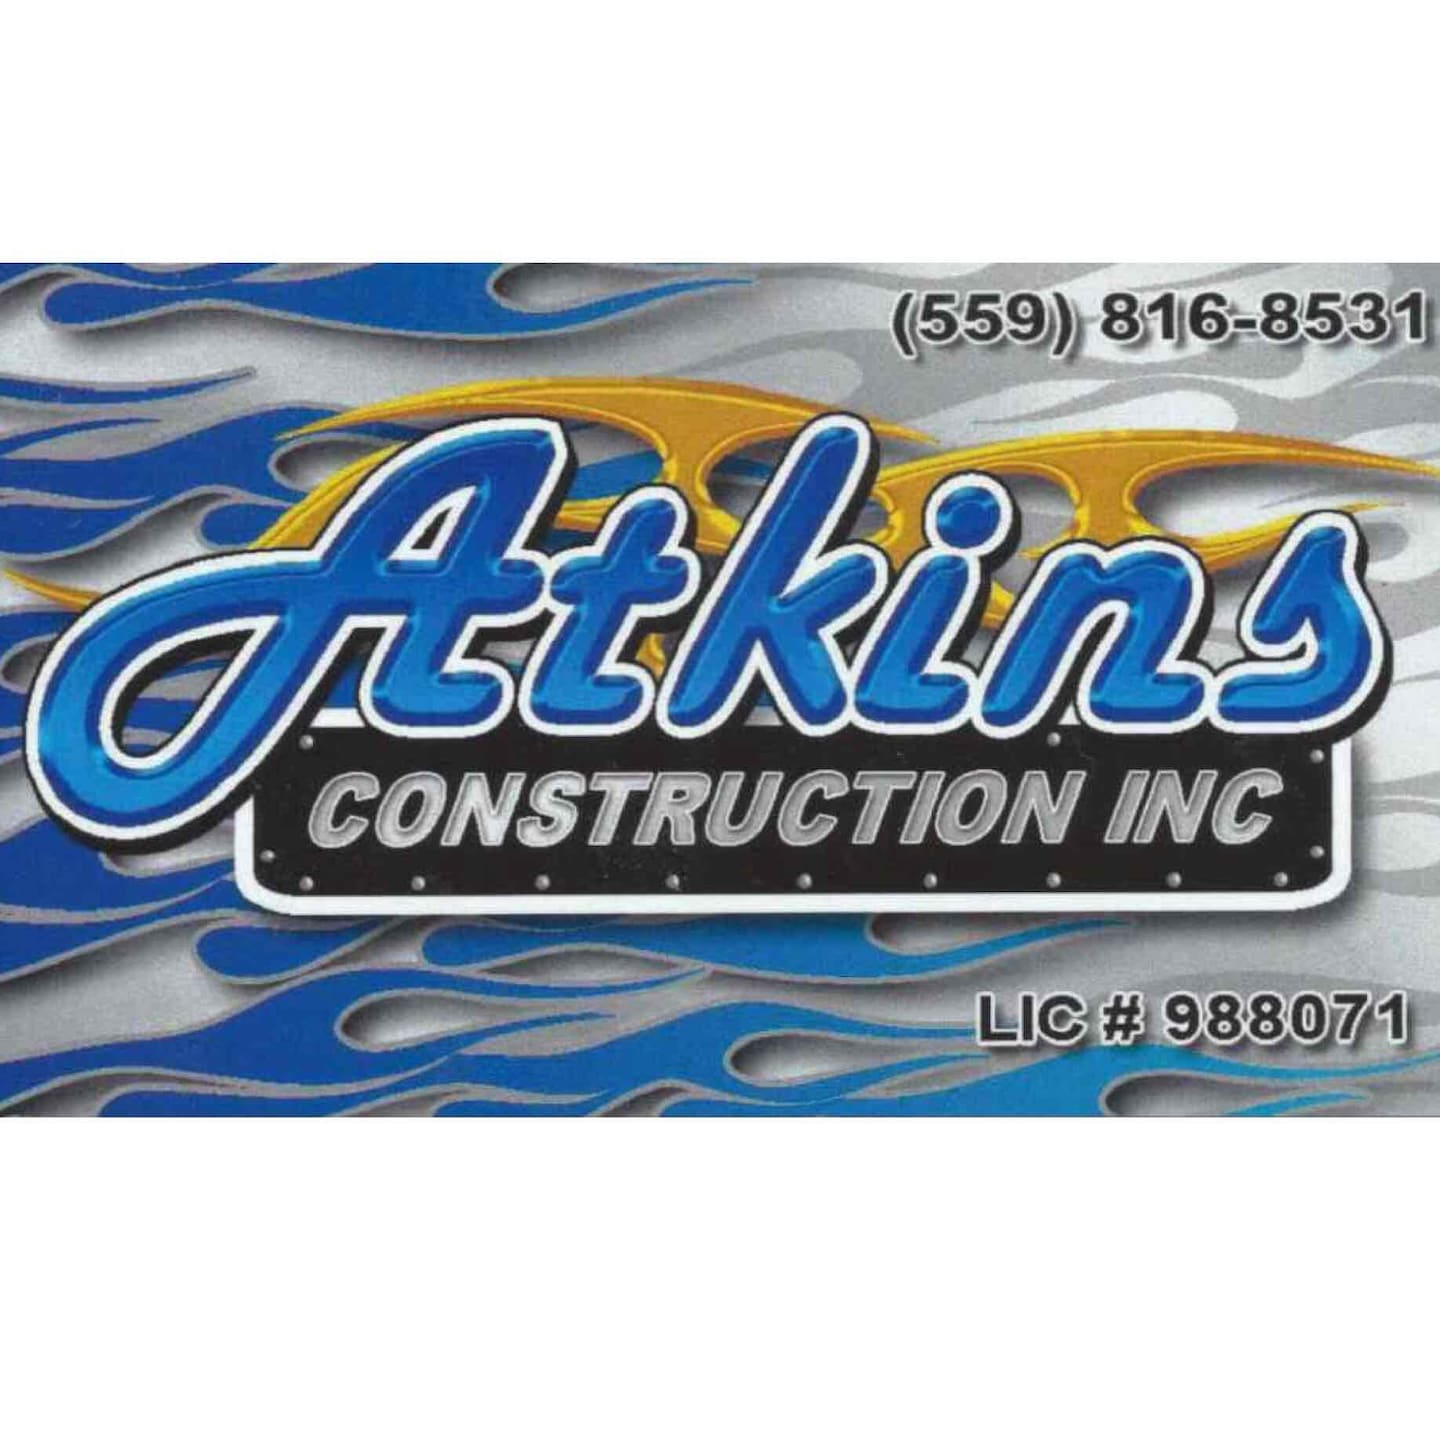 Atkins Construction Inc